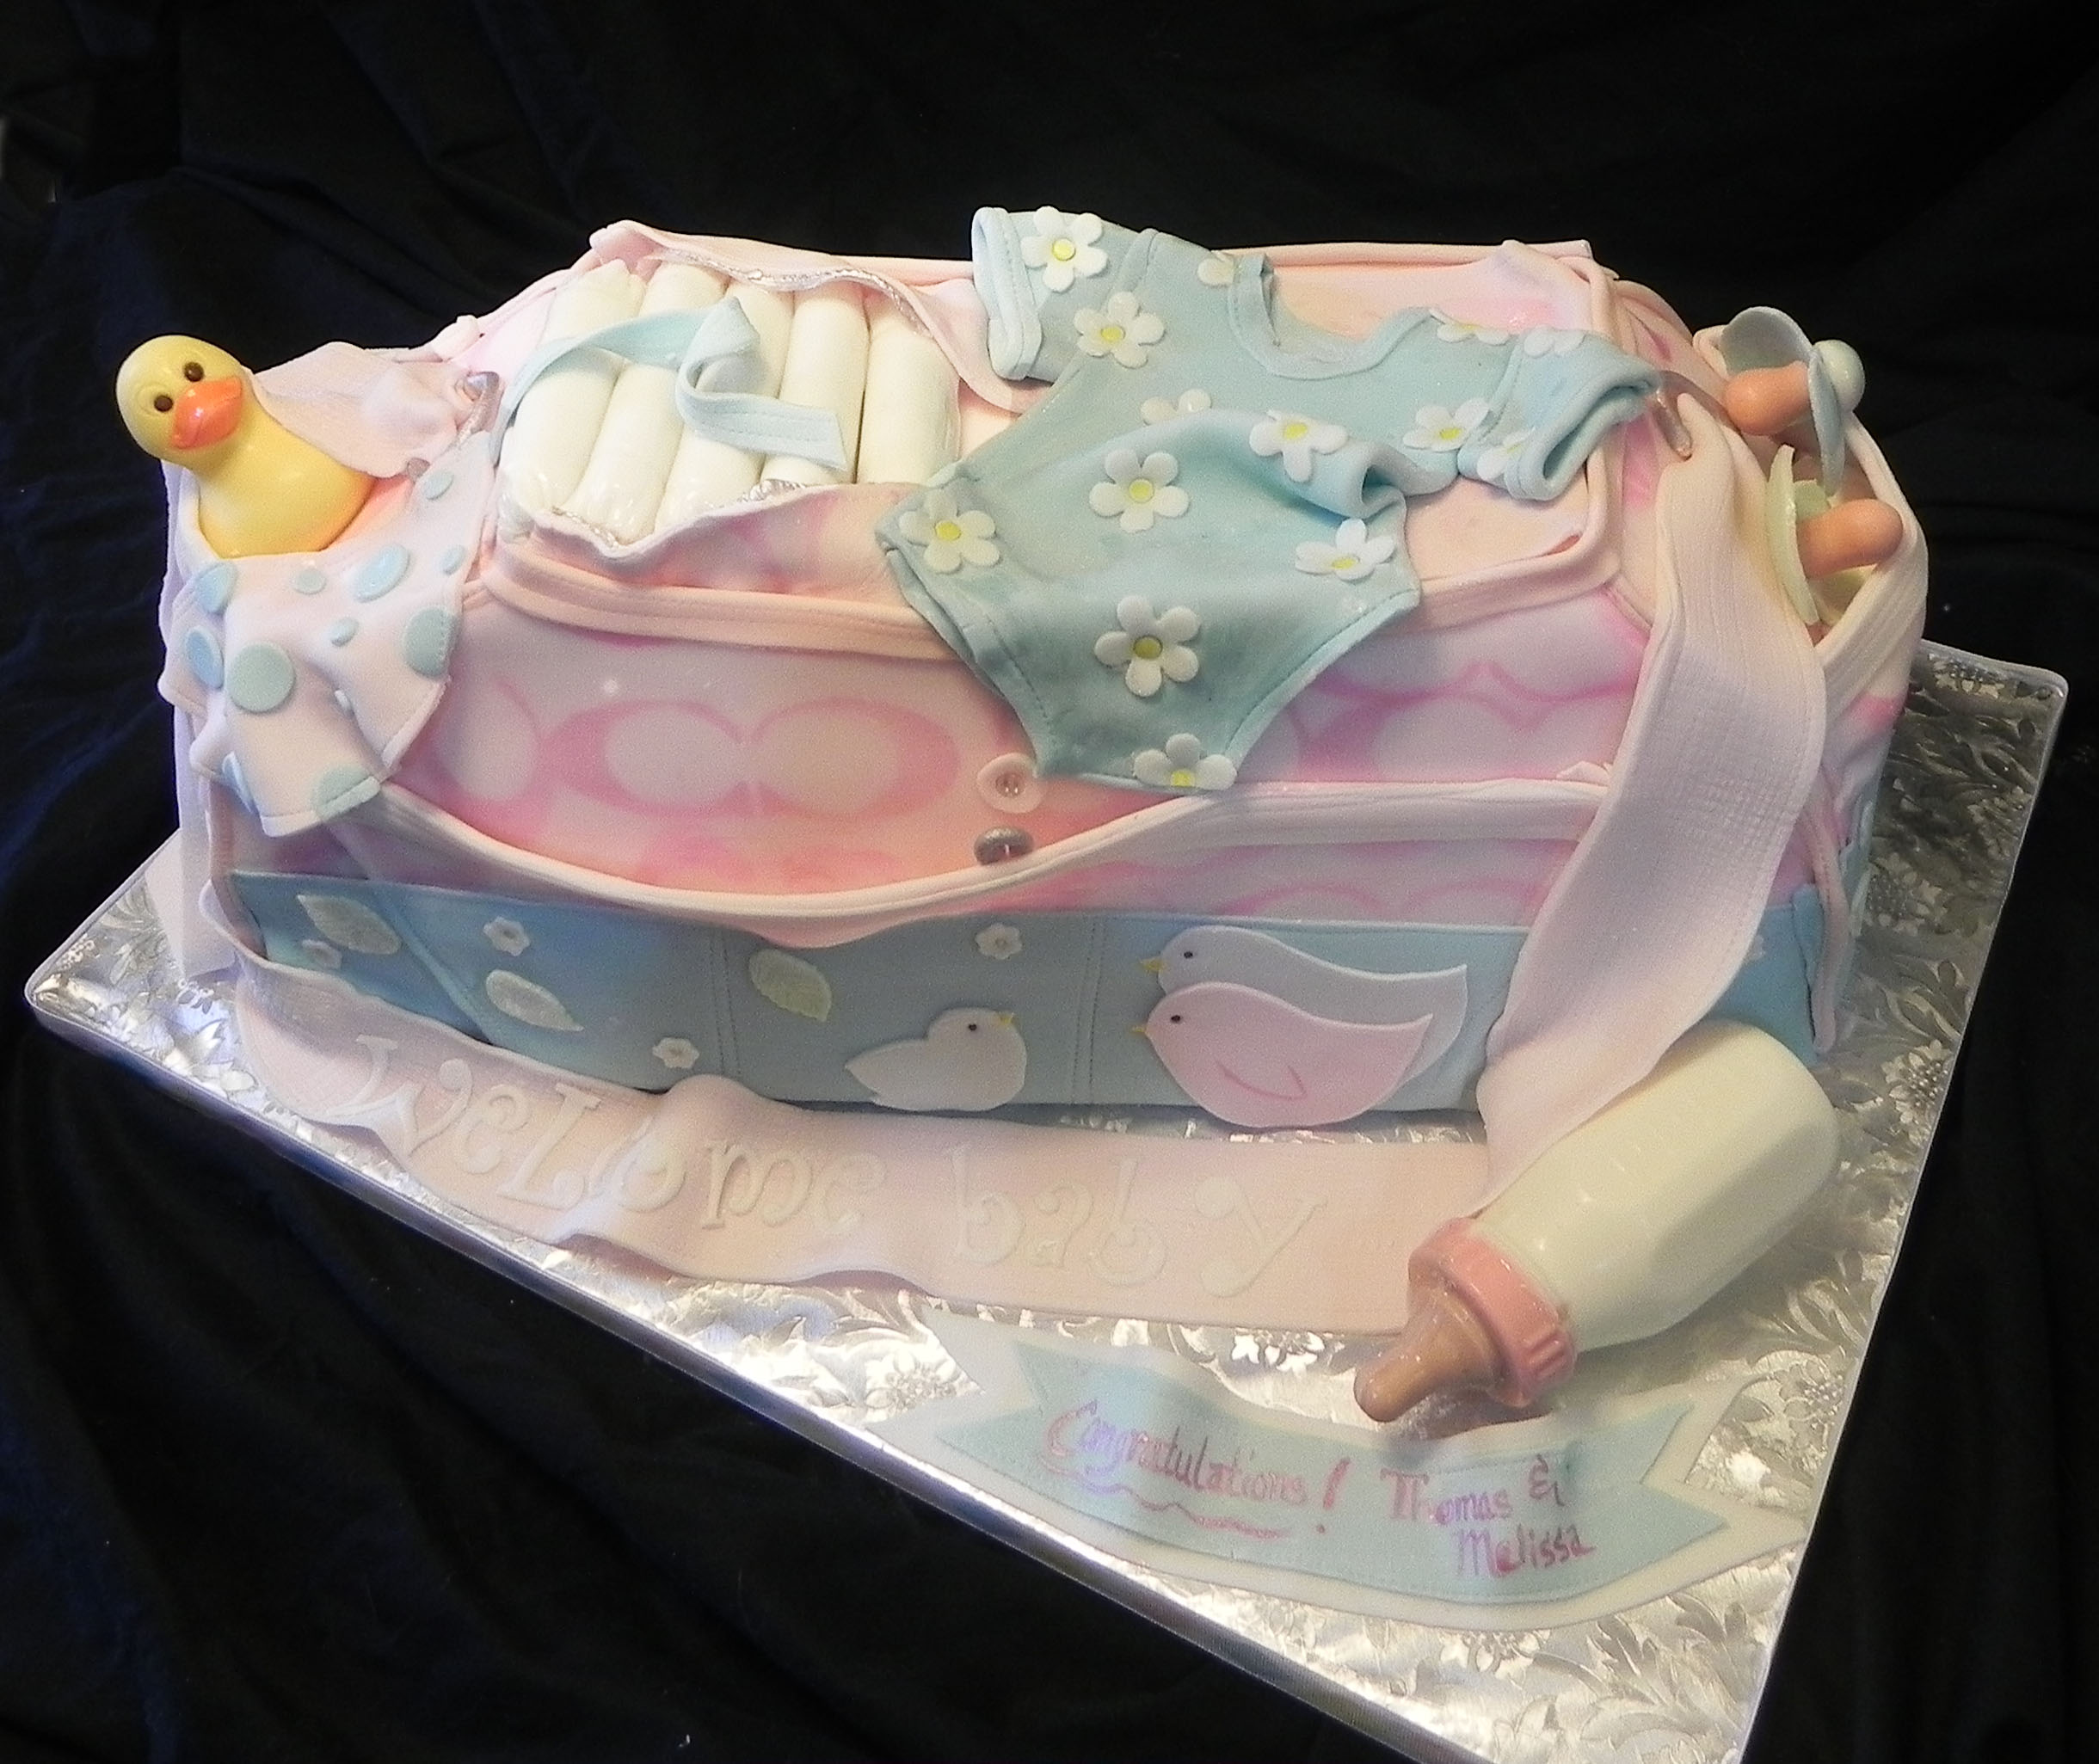 ... Spouse Creates Incredible Military Art With Cake Batter & Fondant